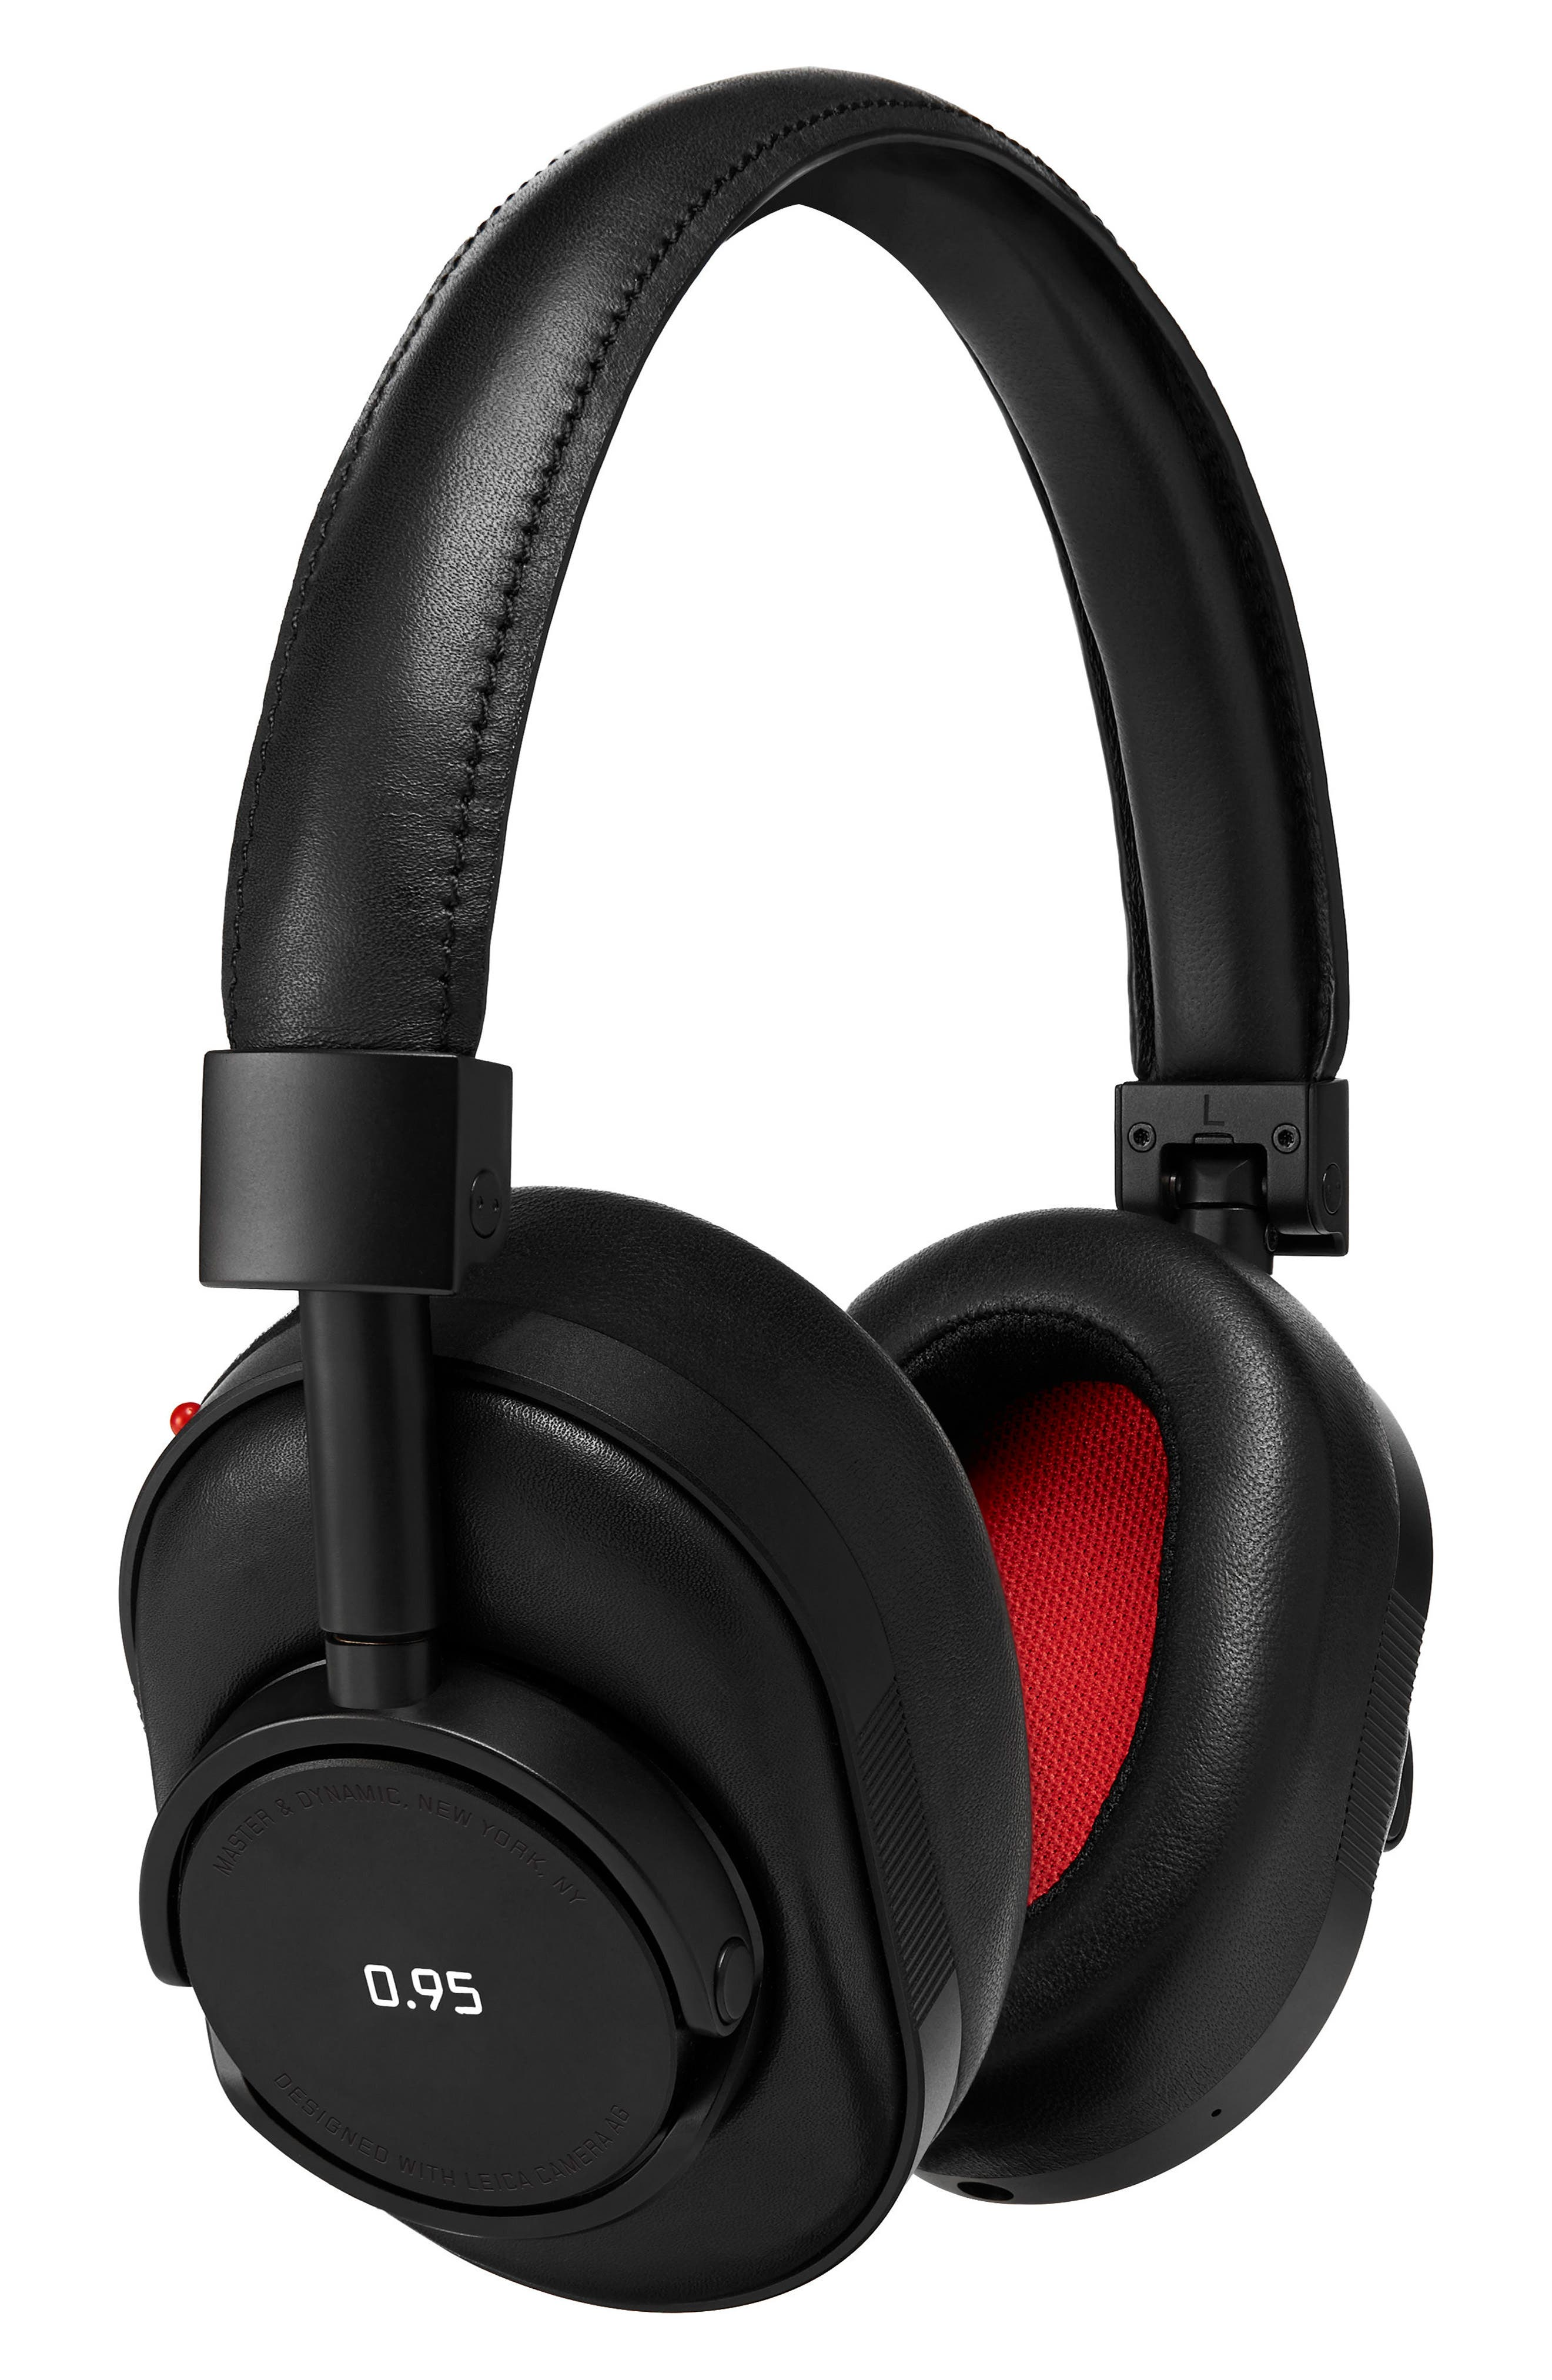 MW60 Wireless Leather Over Ear Headphones,                             Main thumbnail 1, color,                             Black/ Black/ Red